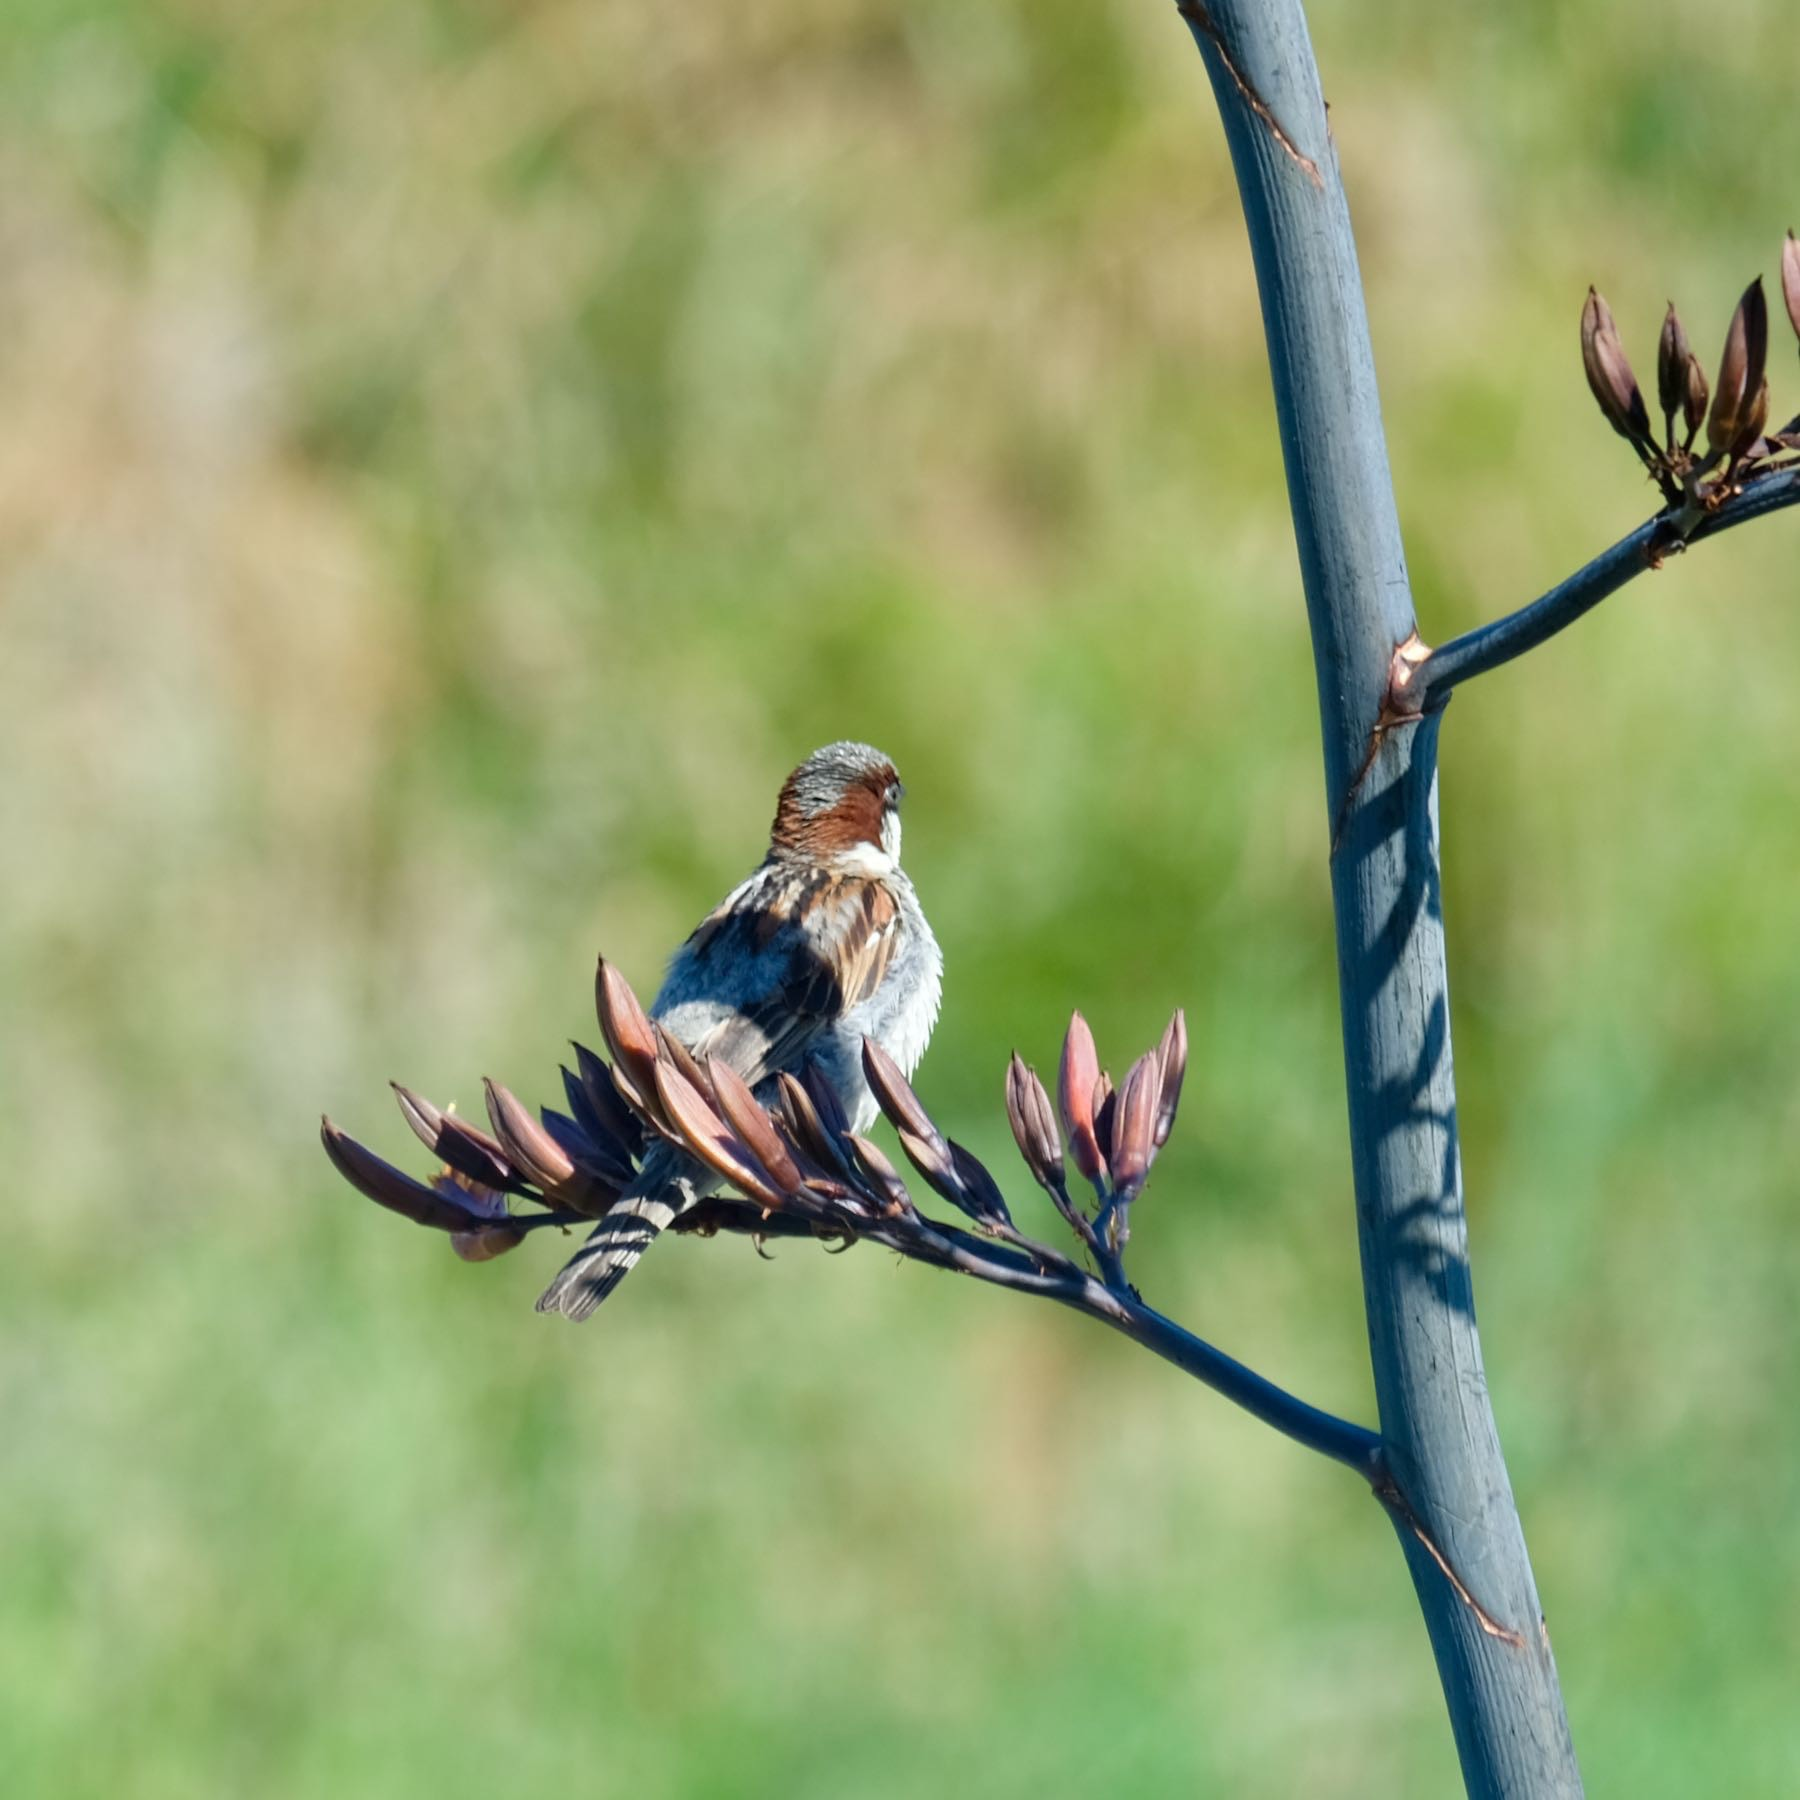 Sparrow sitting on a flax flower, turned away from the camera.